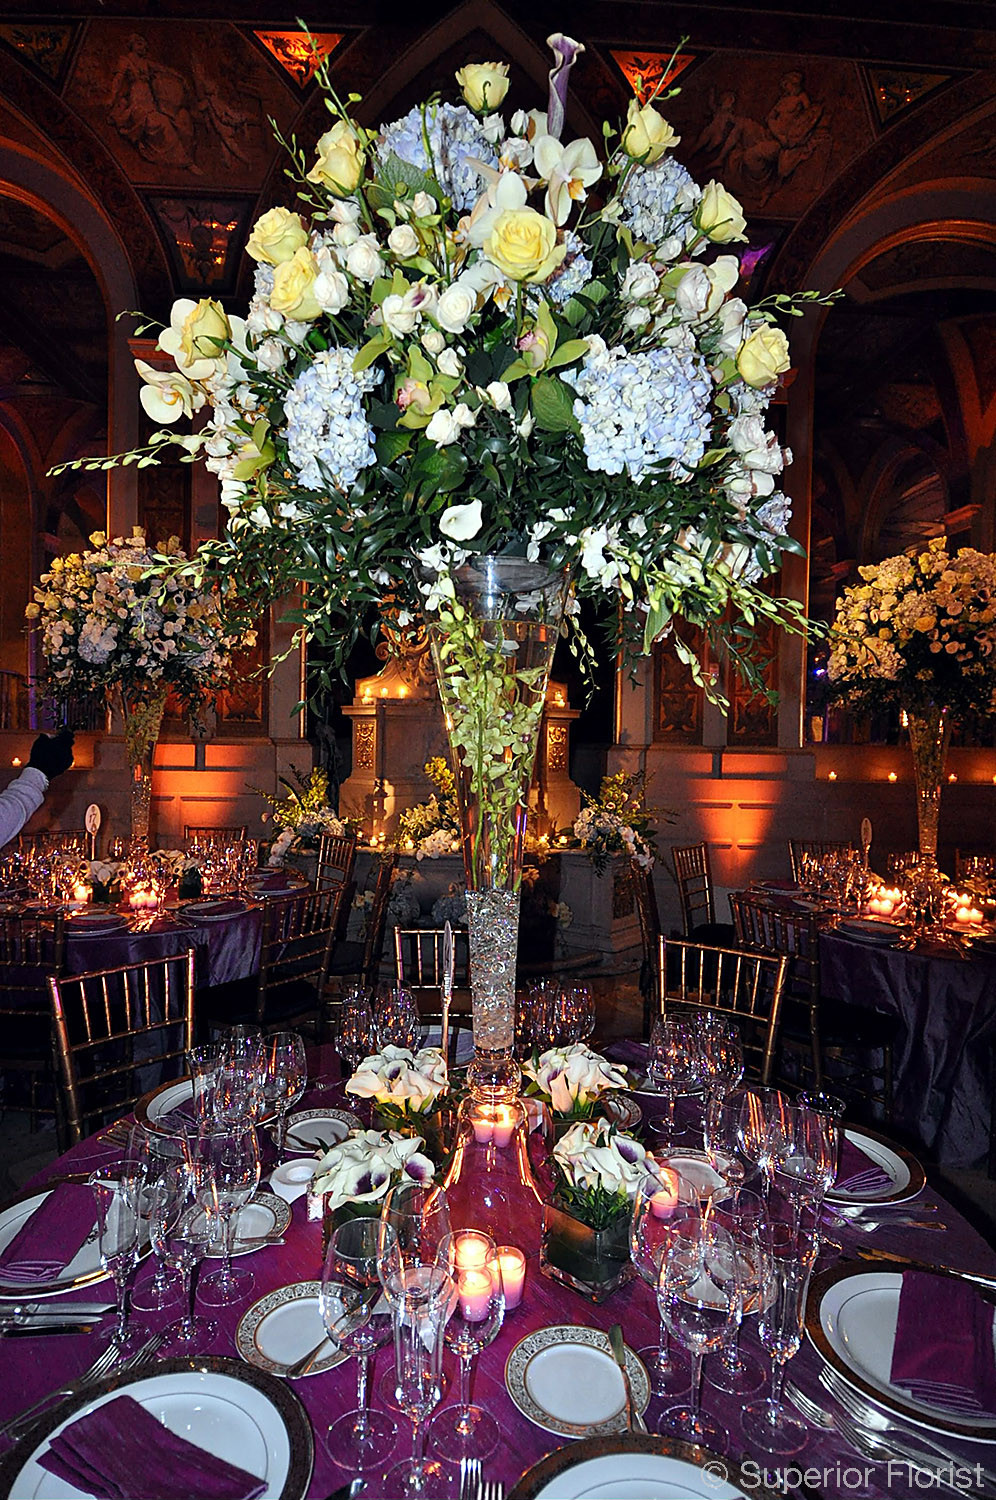 Tall Silver Vases for Wedding Centerpieces Of Wedding Flower Arrangements Tall Vases Flowers Healthy with Superior Florist event Fls Centerpieces Tall Vase Centerpiece Ideas An Extravagant Dinner Table atop A forty Bathroom Tall Vase Wedding Centerpiece Clear